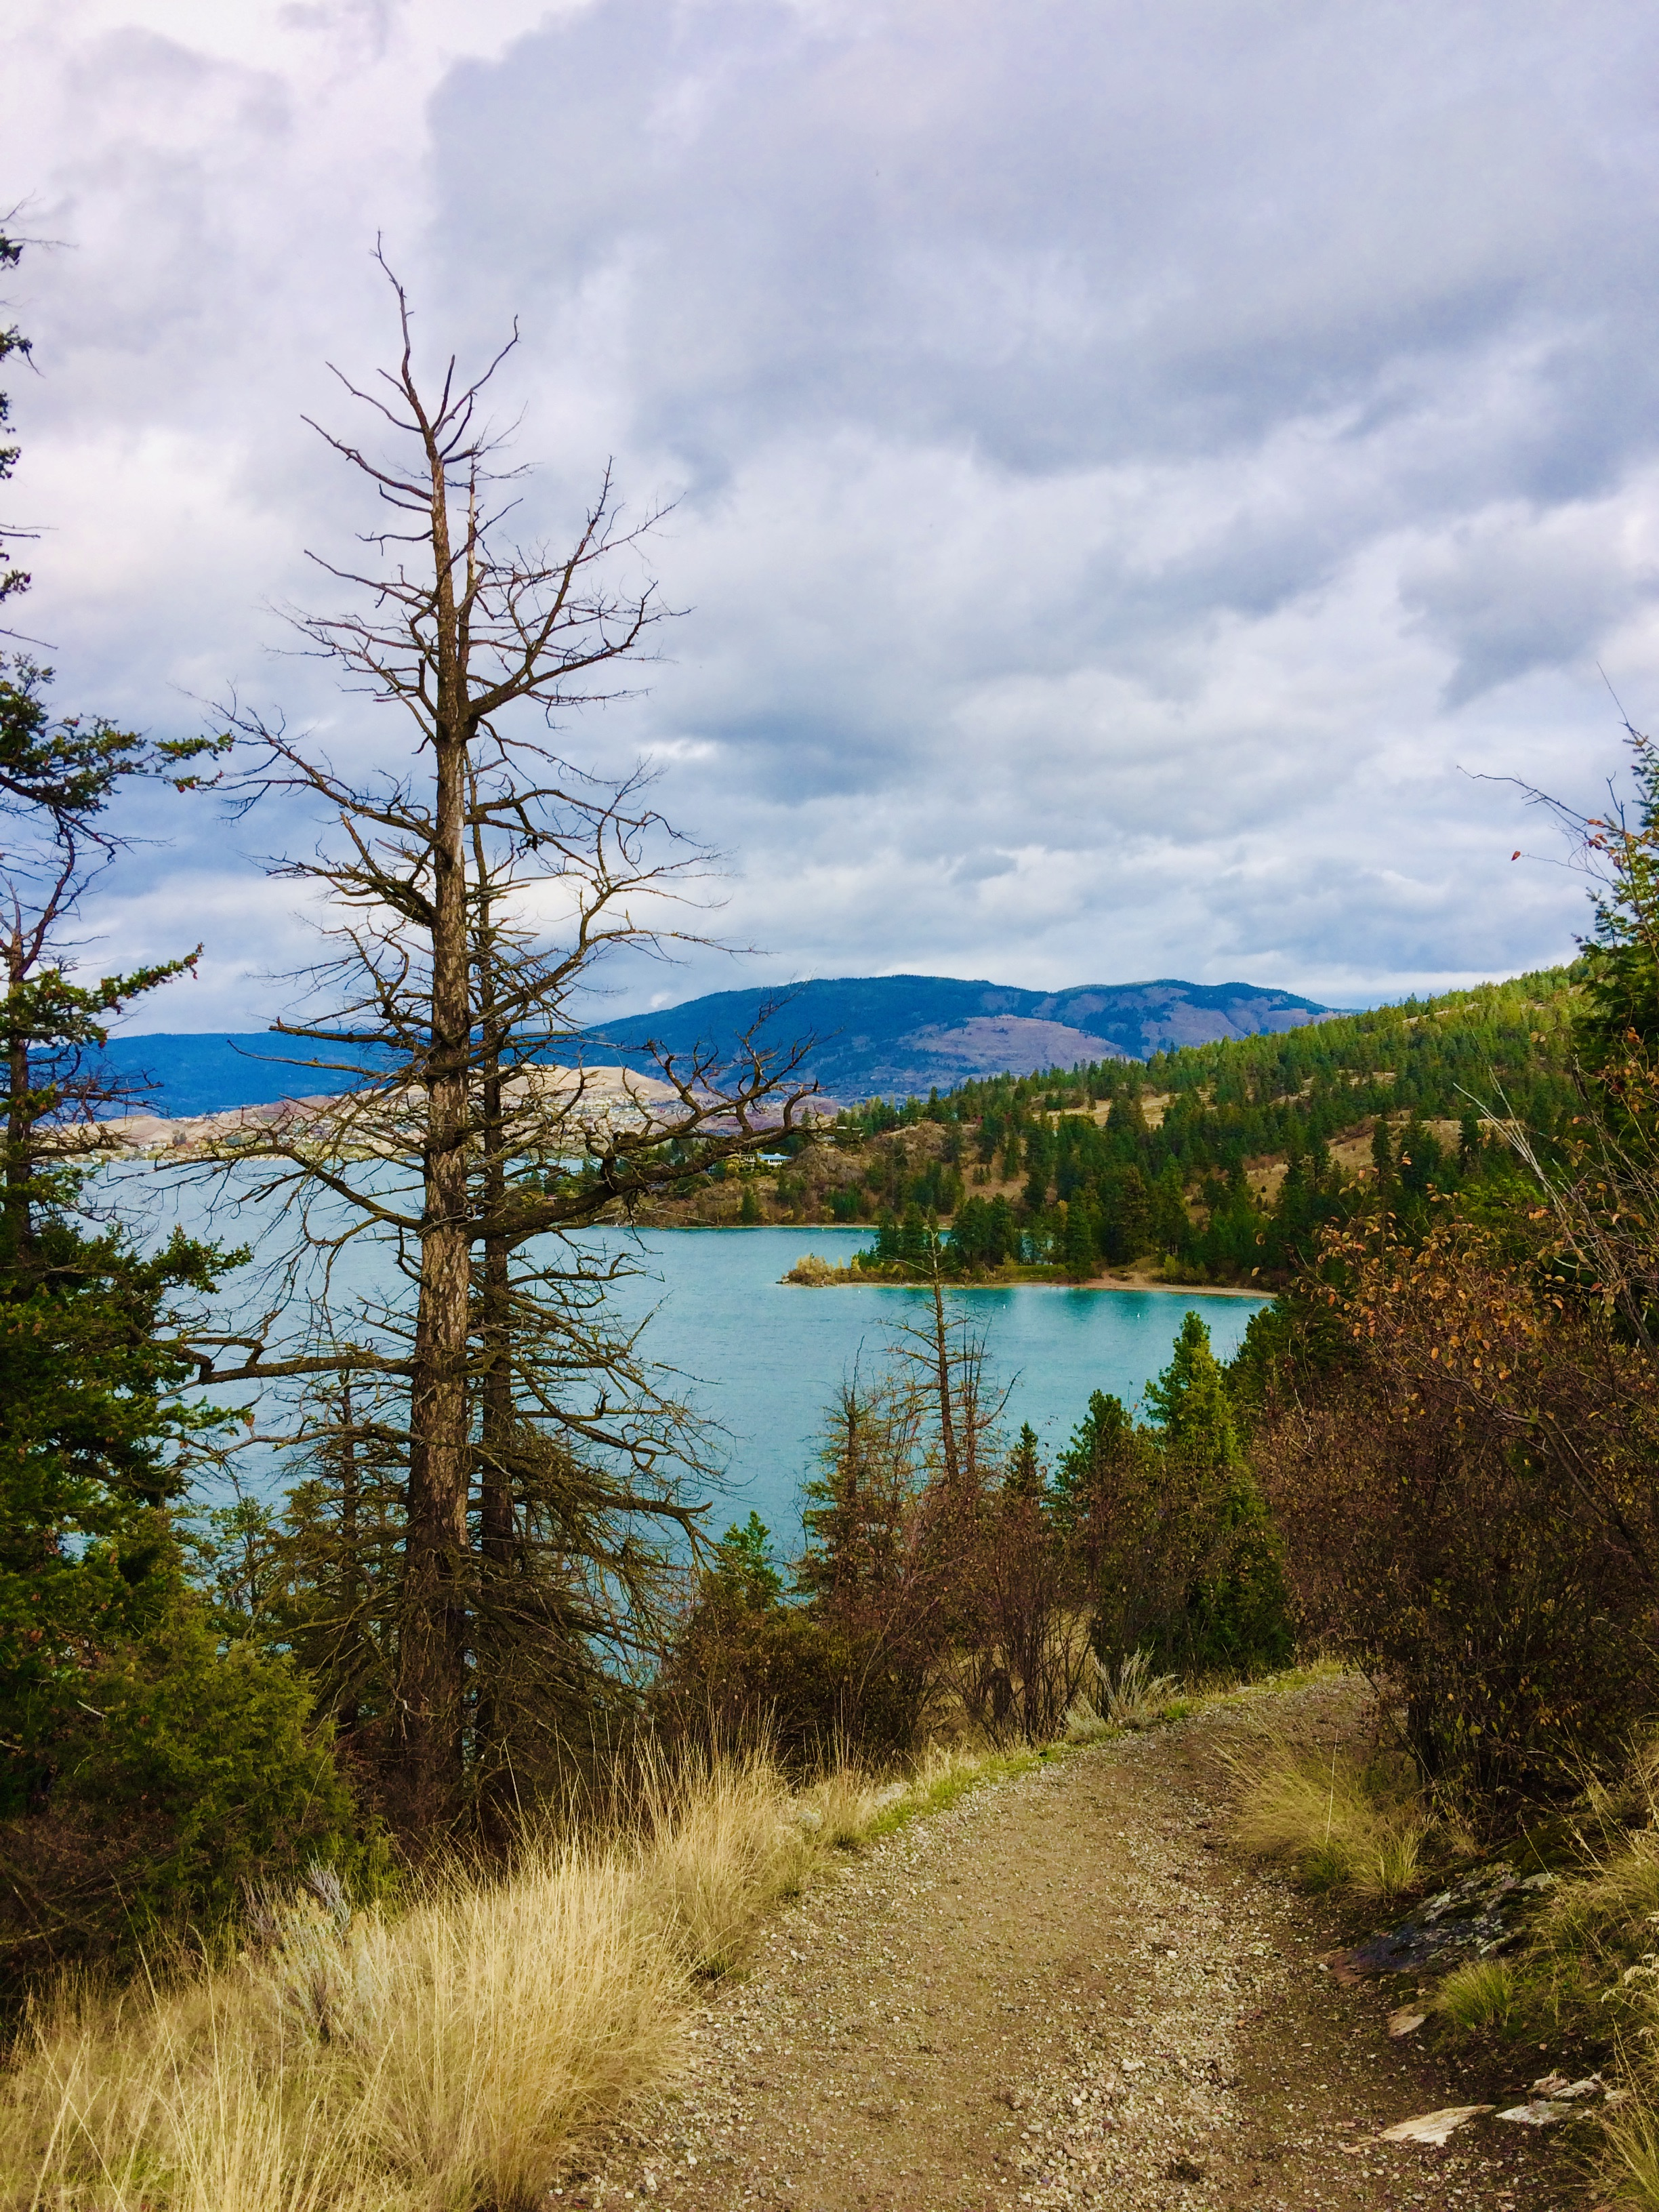 a turquoise lake with trees and hills